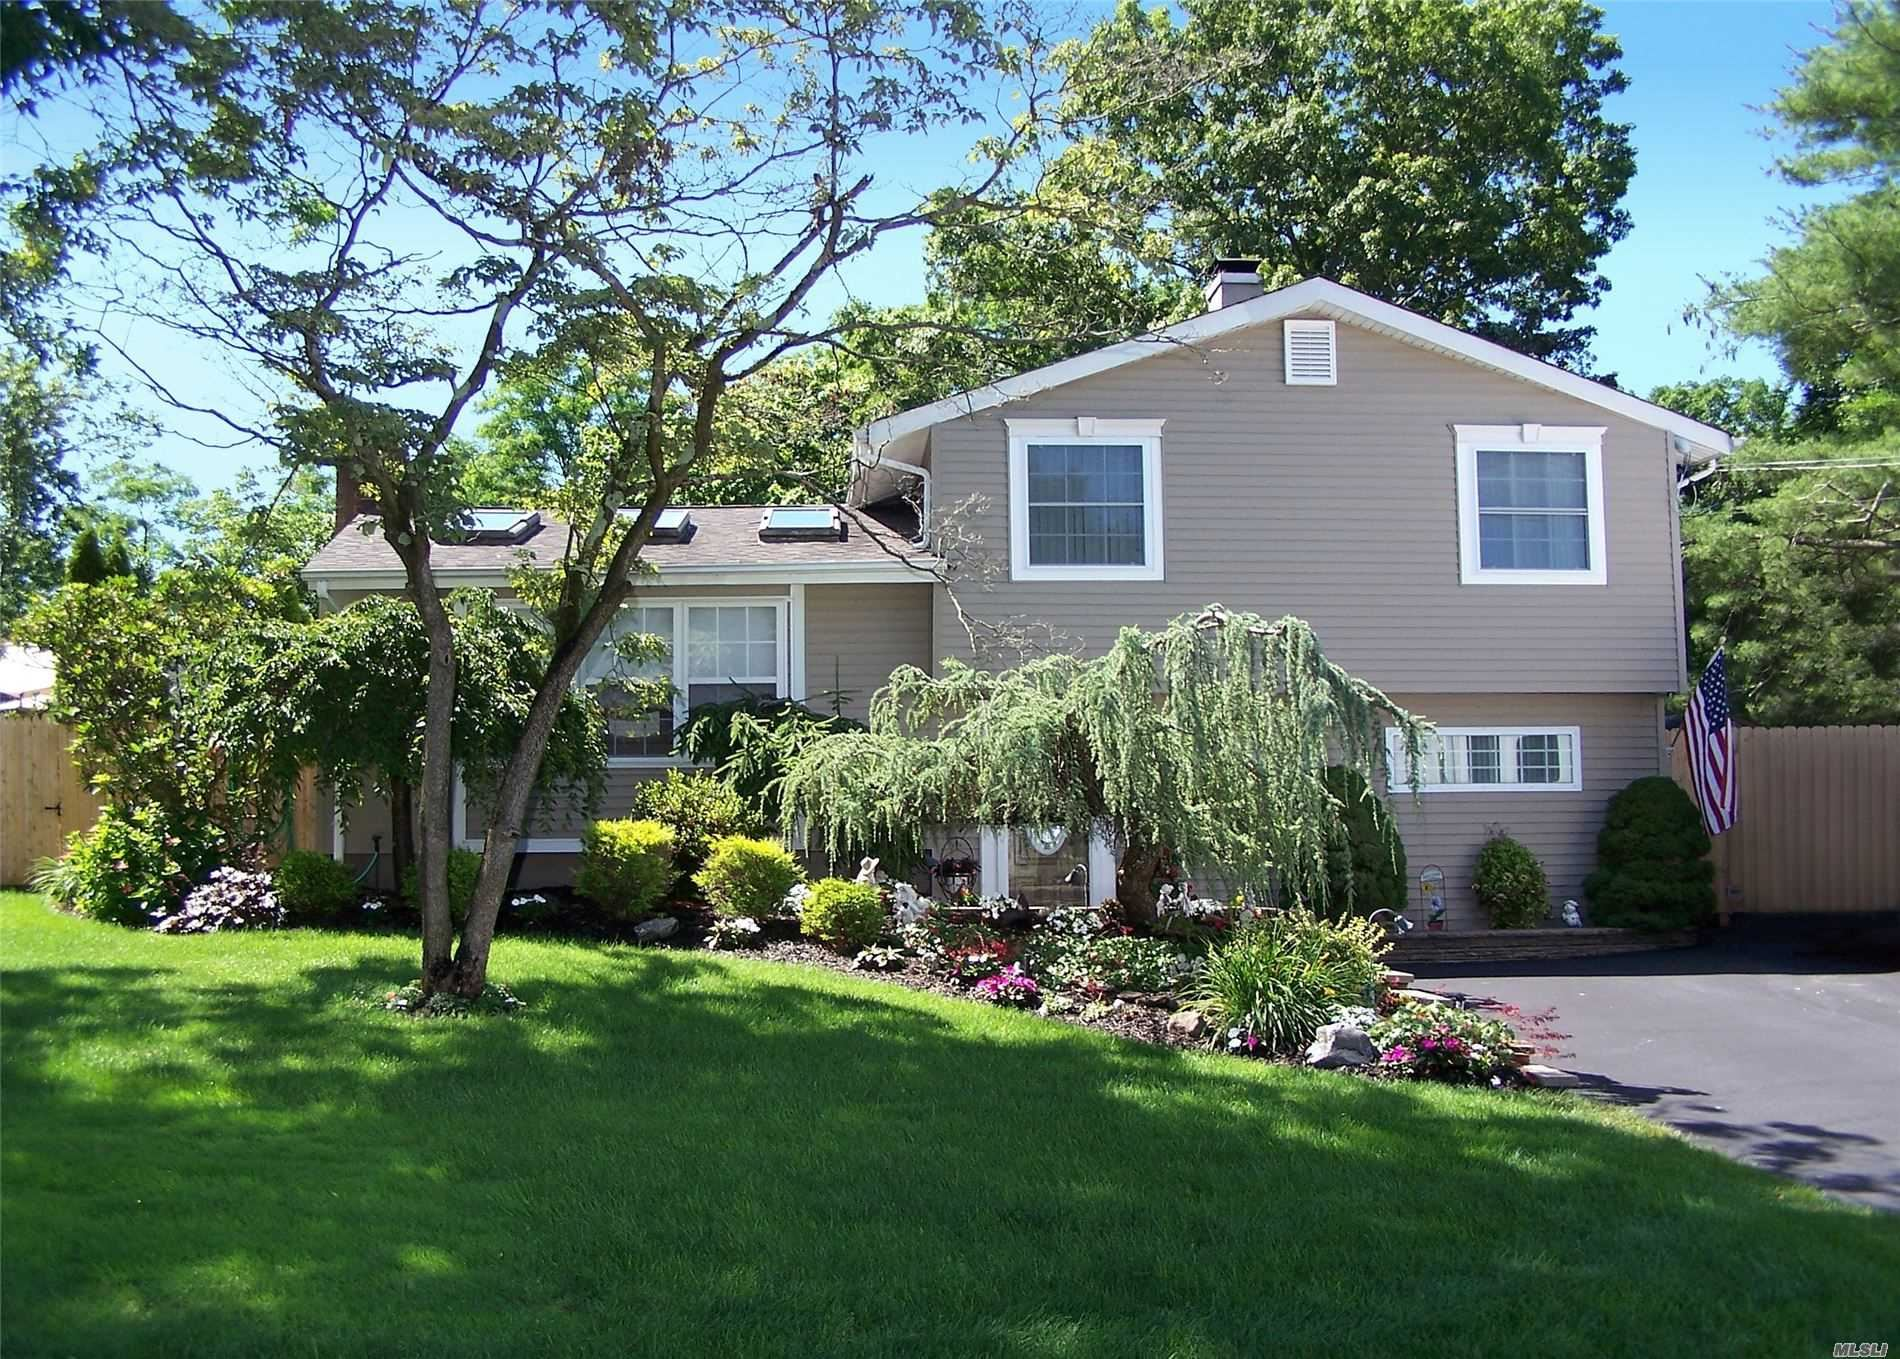 1902 Phillips Drive, Medford, NY 11763 - MLS#: 3229768